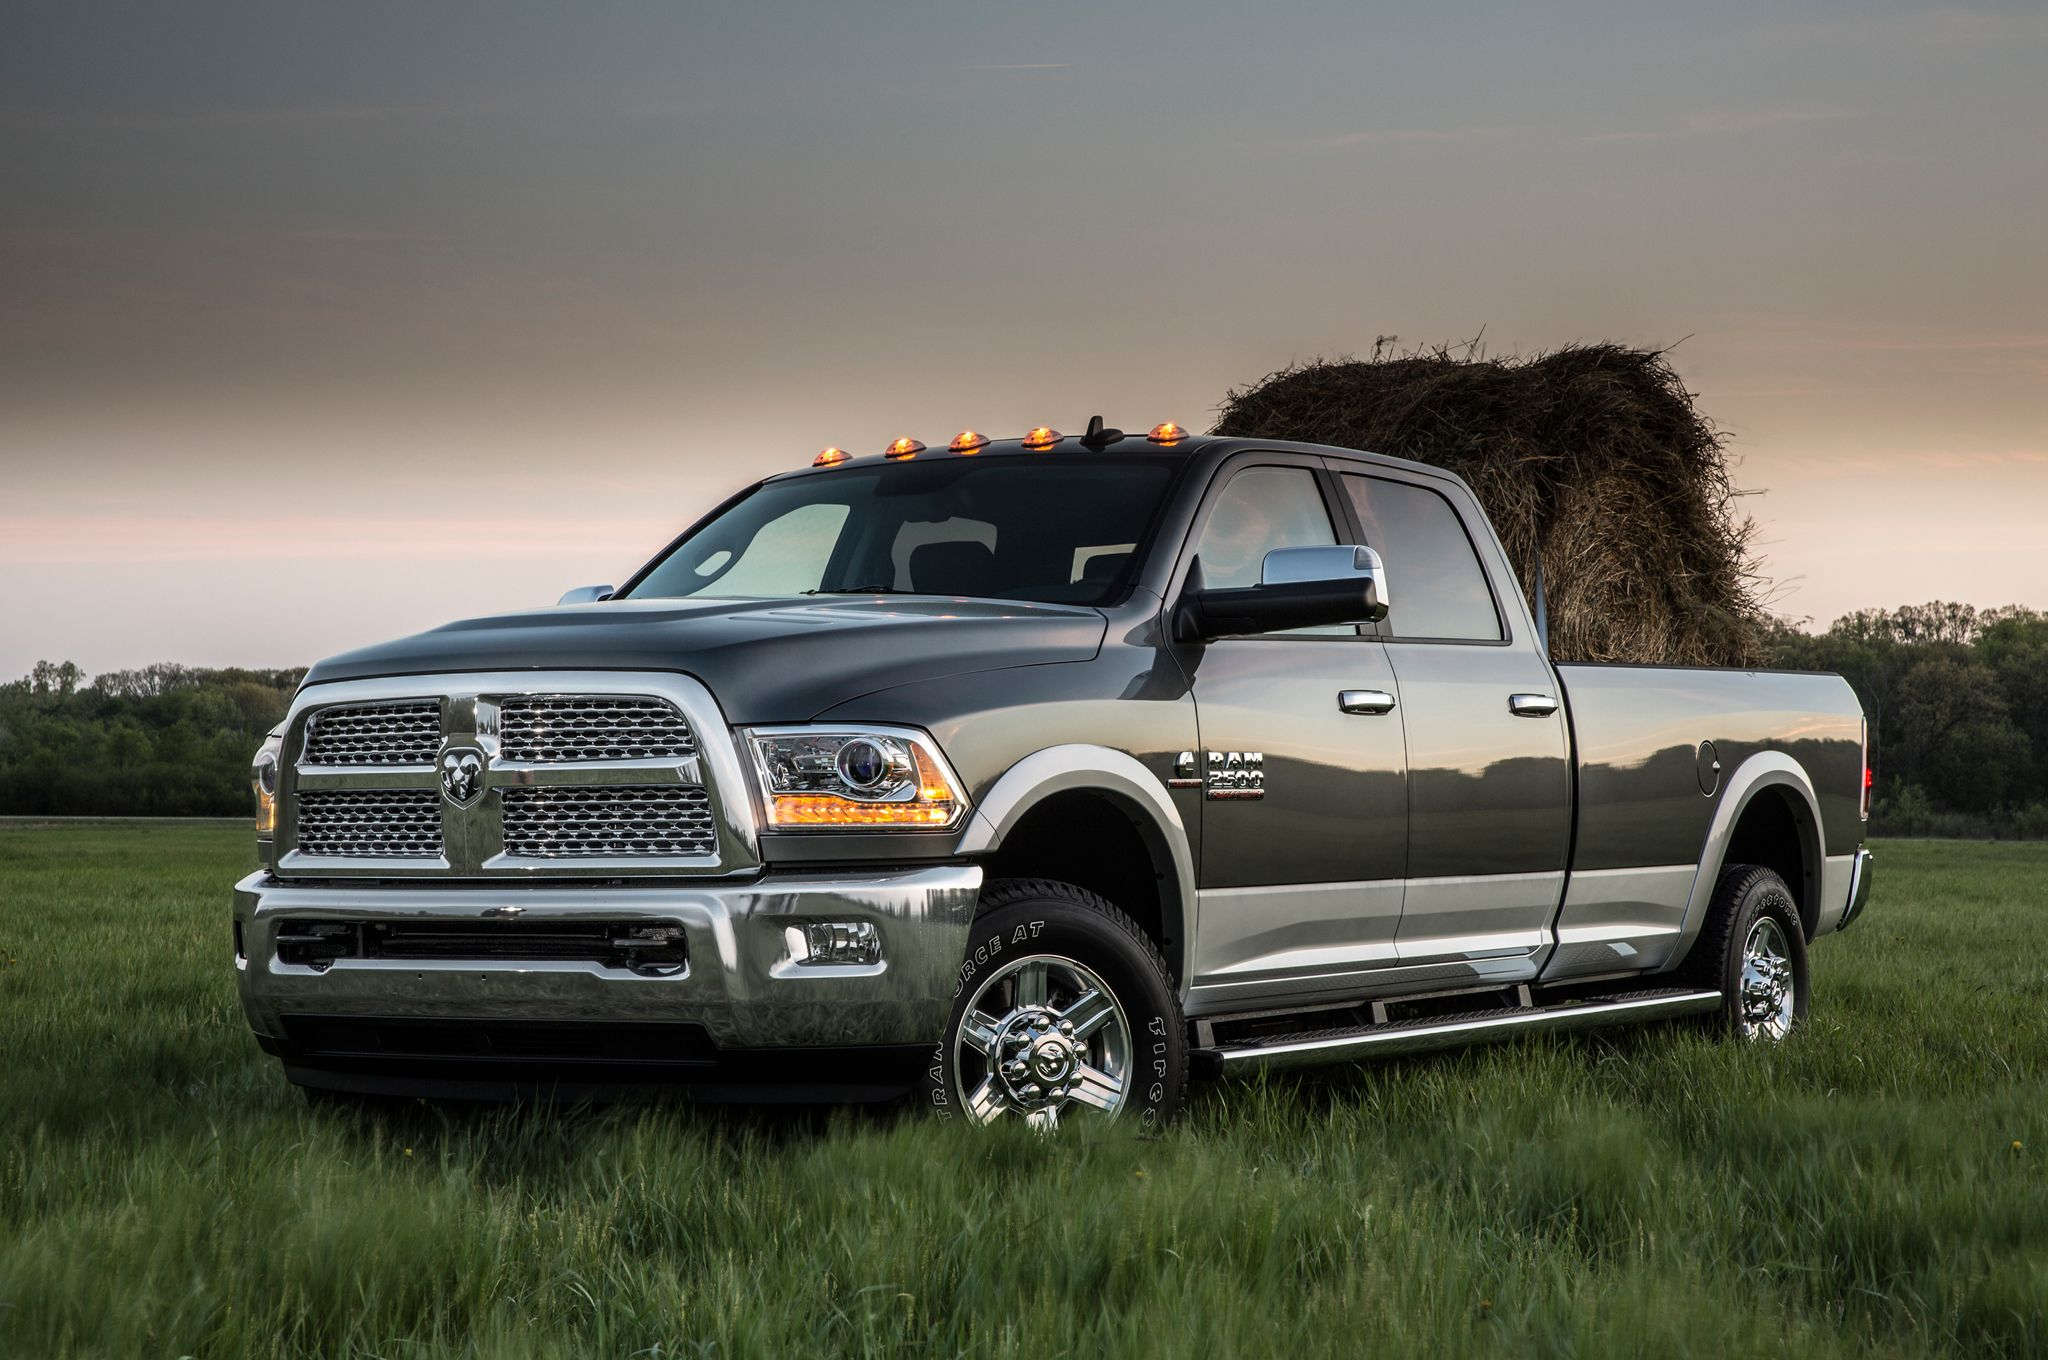 2013 ram 3500 hd first drive motor trend